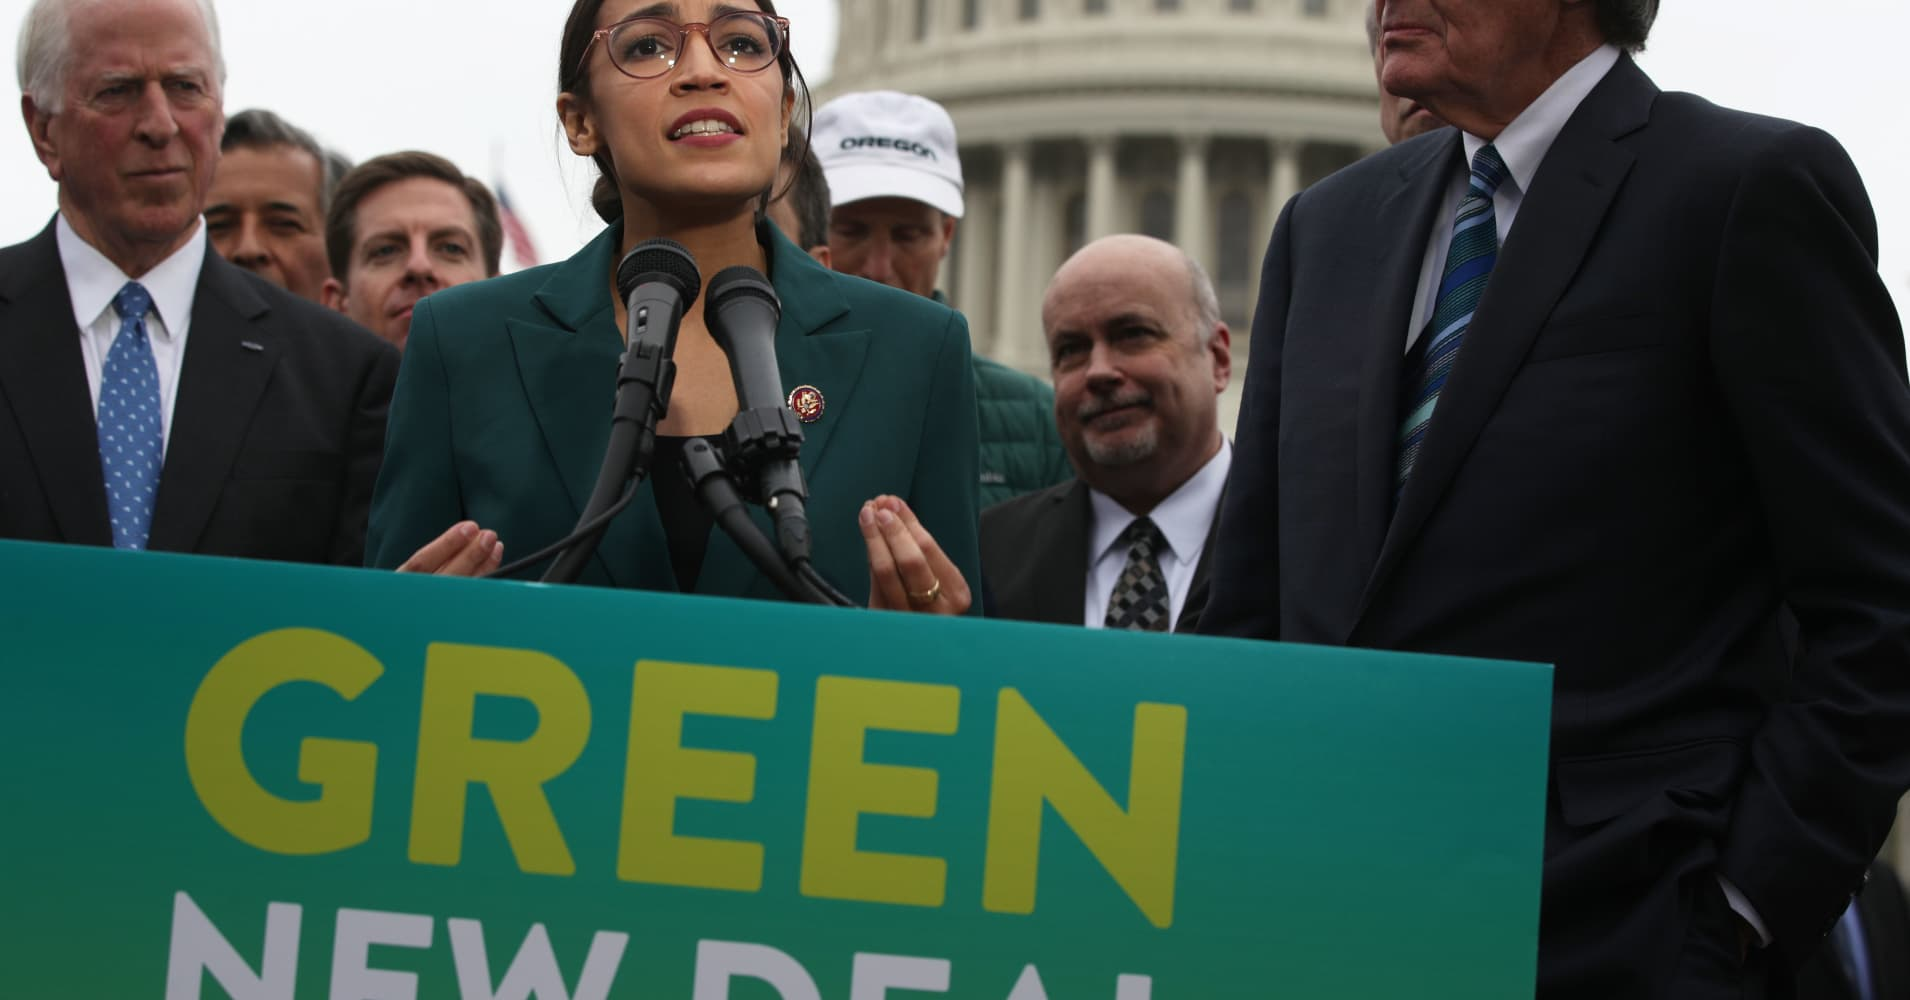 Some in GOP buck Trump, counter Green New Deal with climate plans